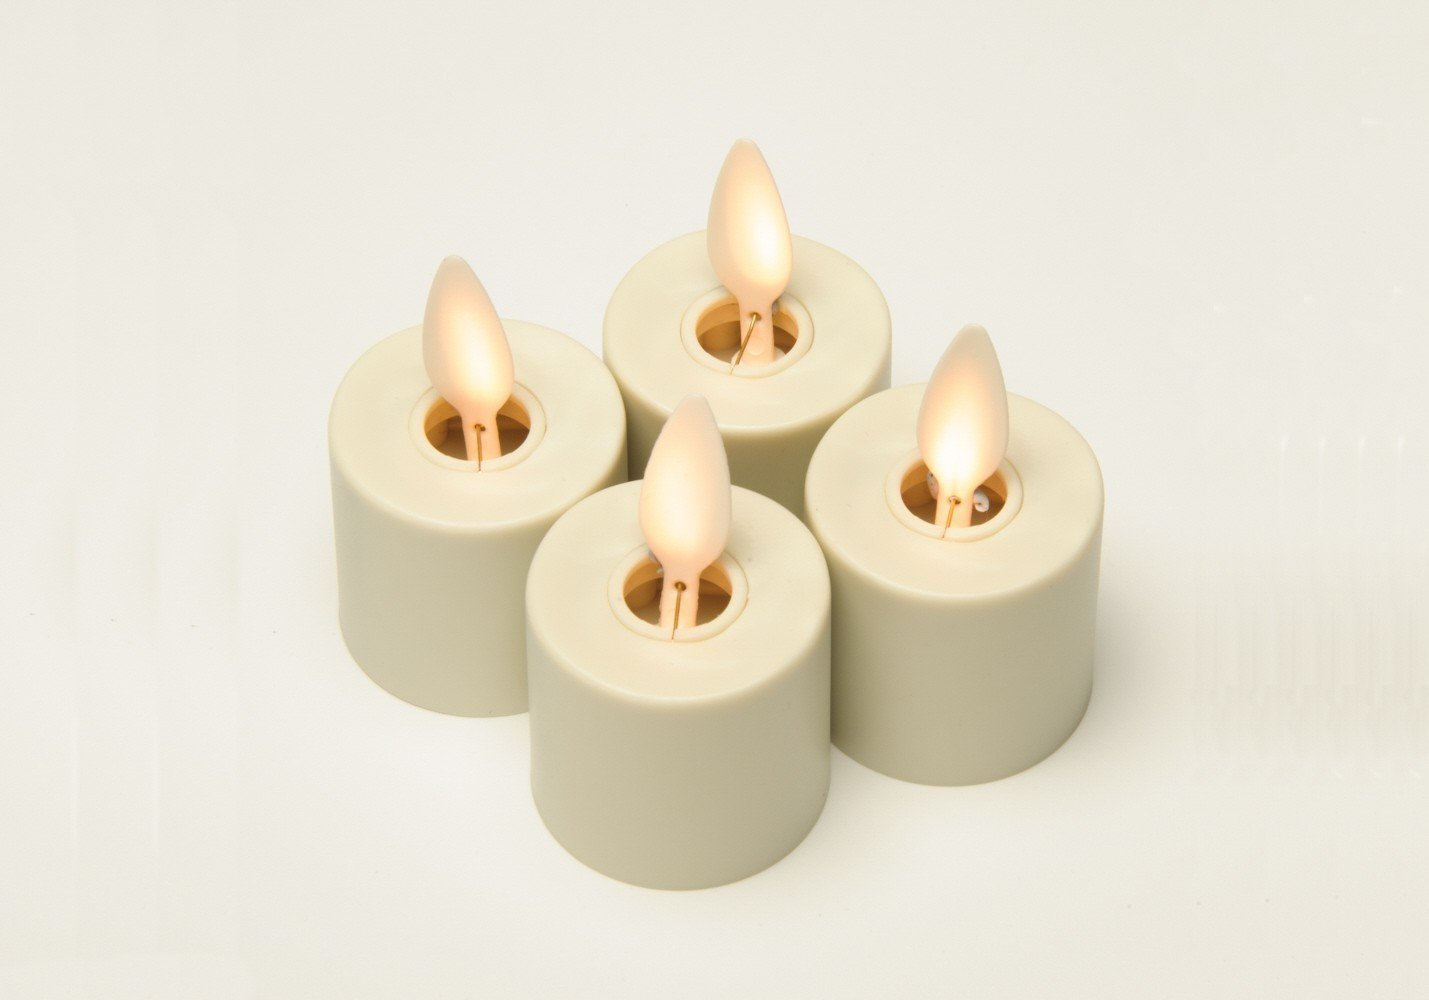 6 Set Ivory Luminara Flameless Candles with Antique Bronze Recharging Base with Timer Remote Included by Luminara